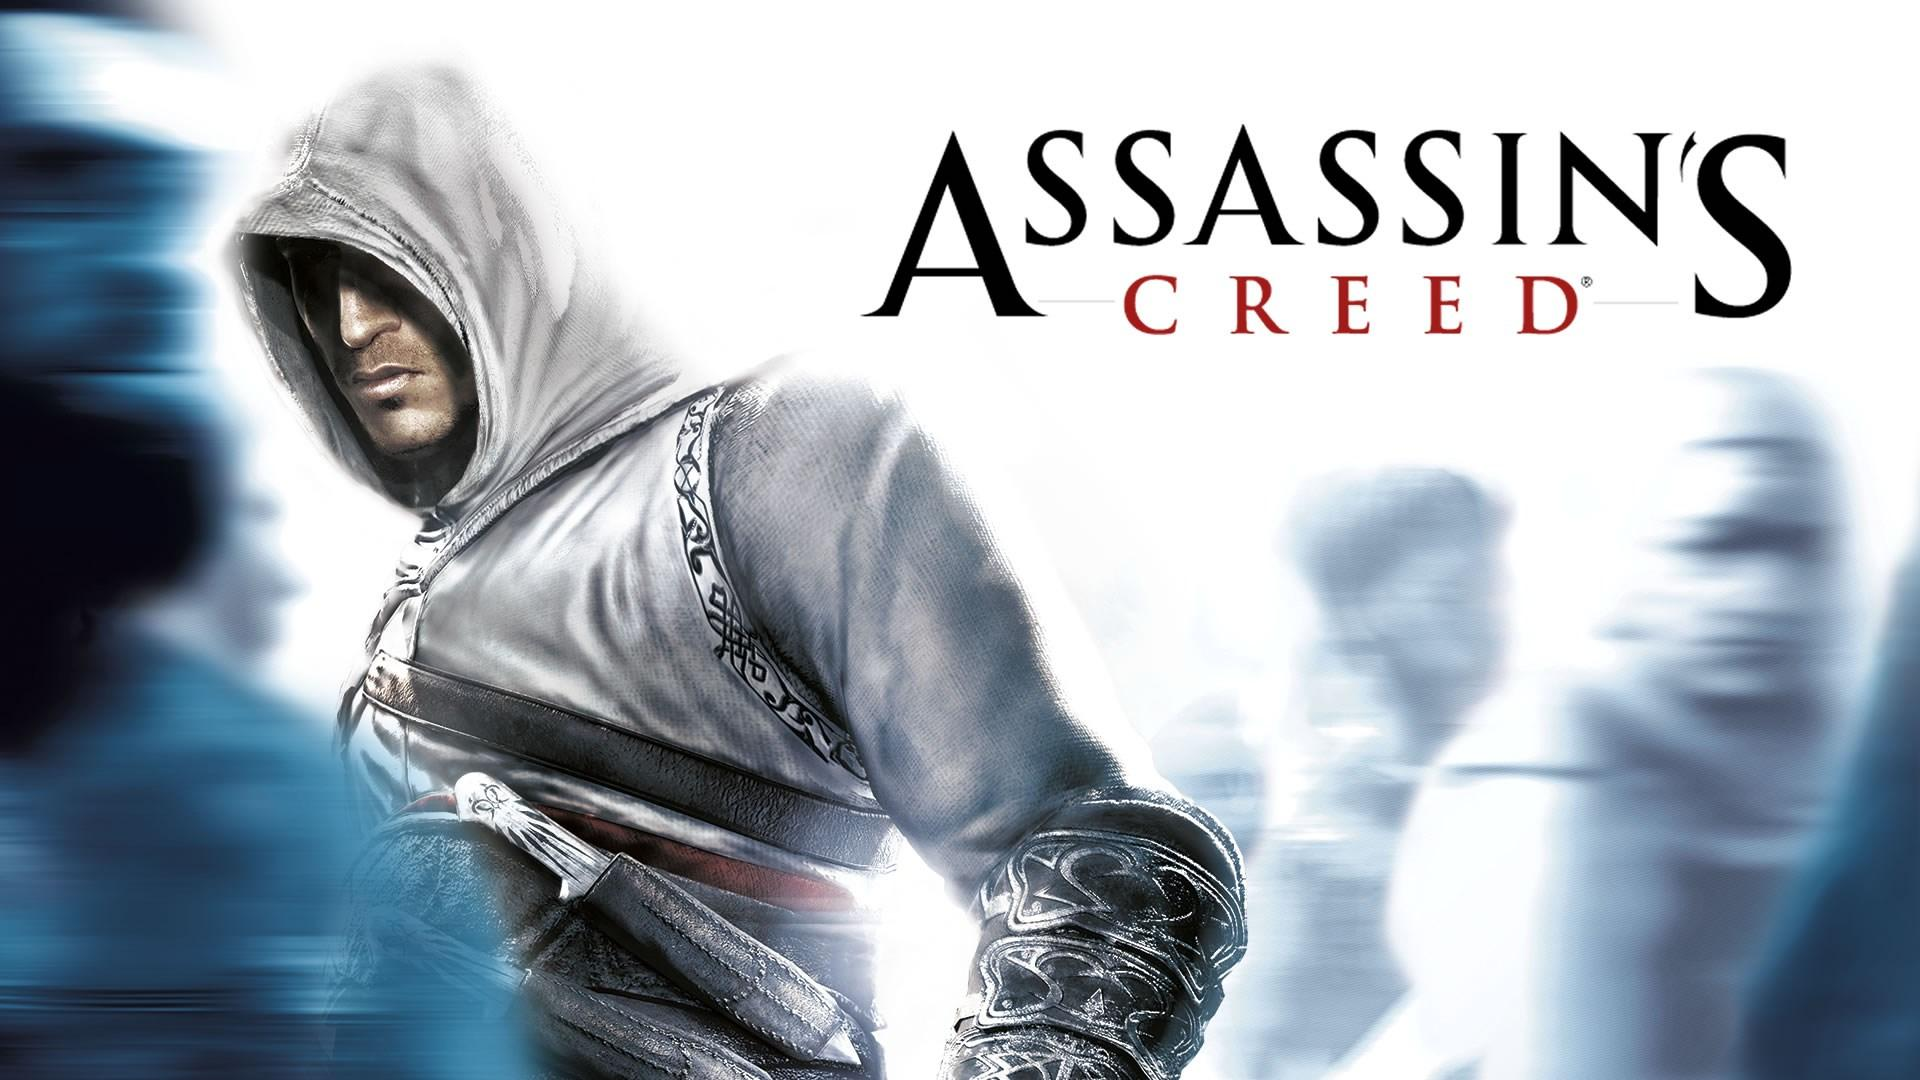 ASSASSIN'S CREED 1 APK Download Latest Version For Android